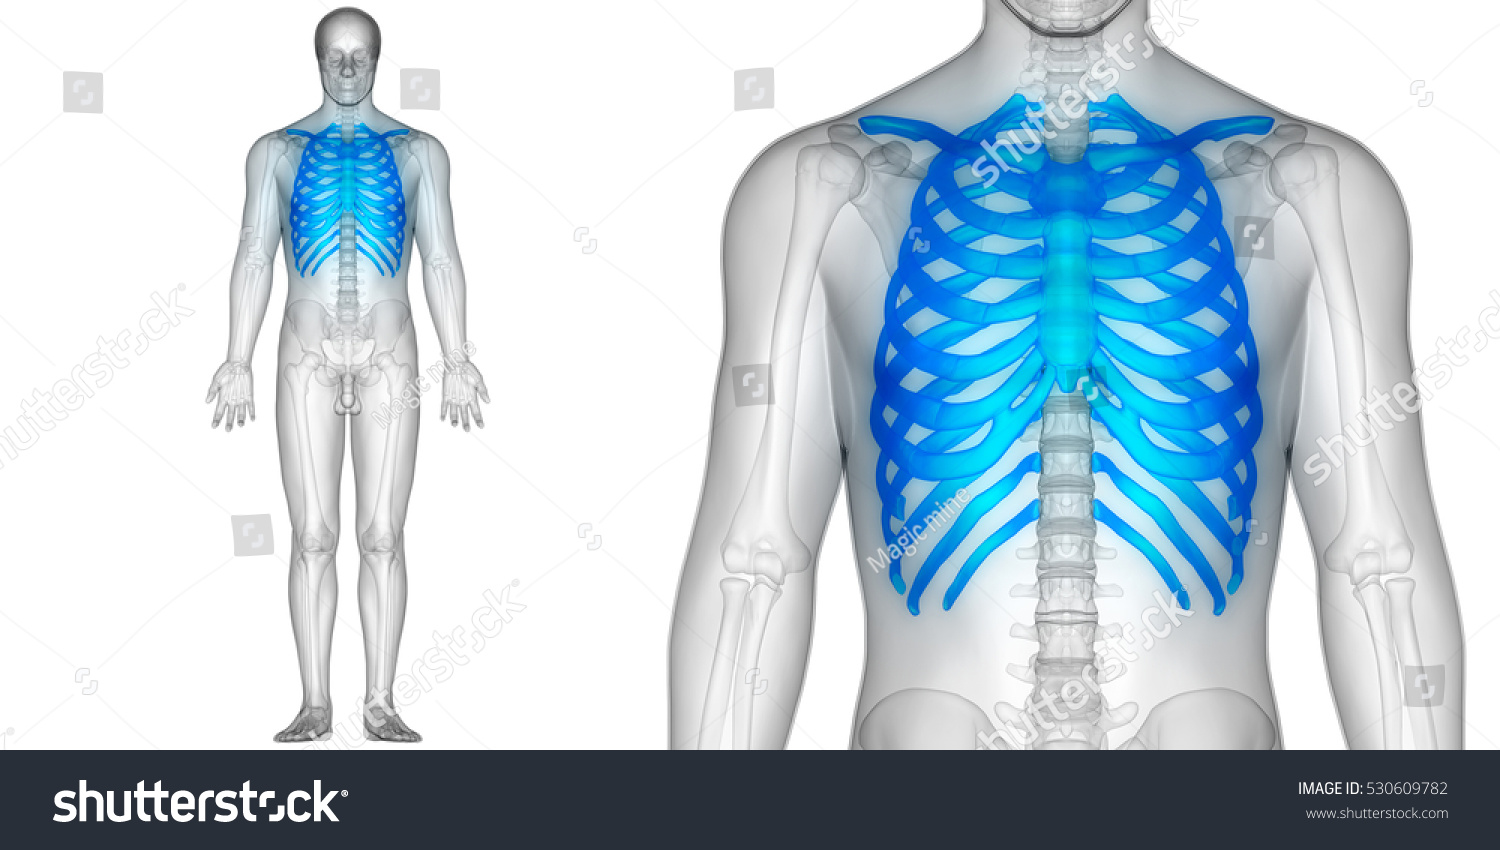 Human Skeleton Ribs With Vertebral Column Anatomy 3d Ez Canvas